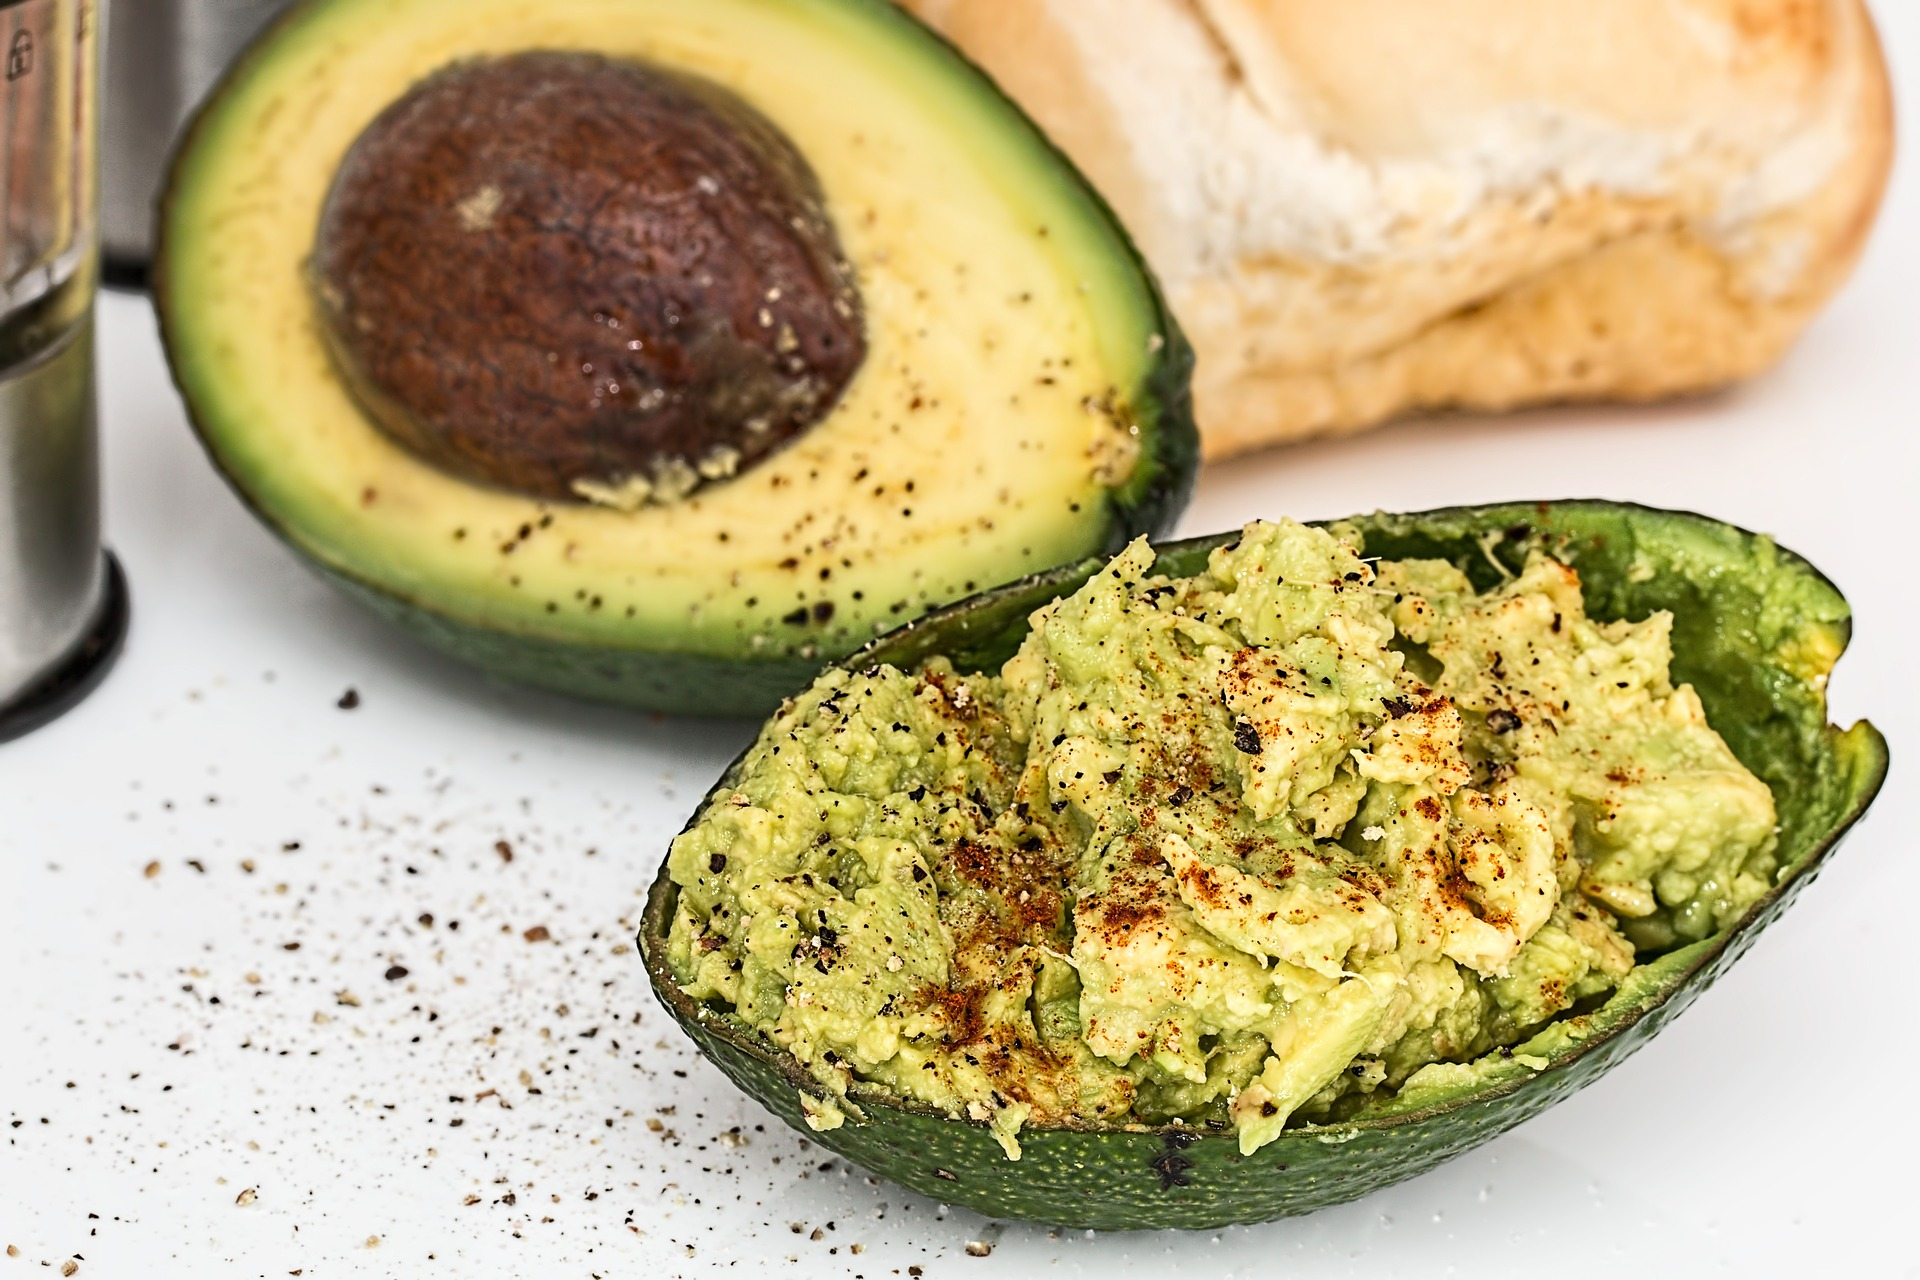 healthy fats are vital for your body